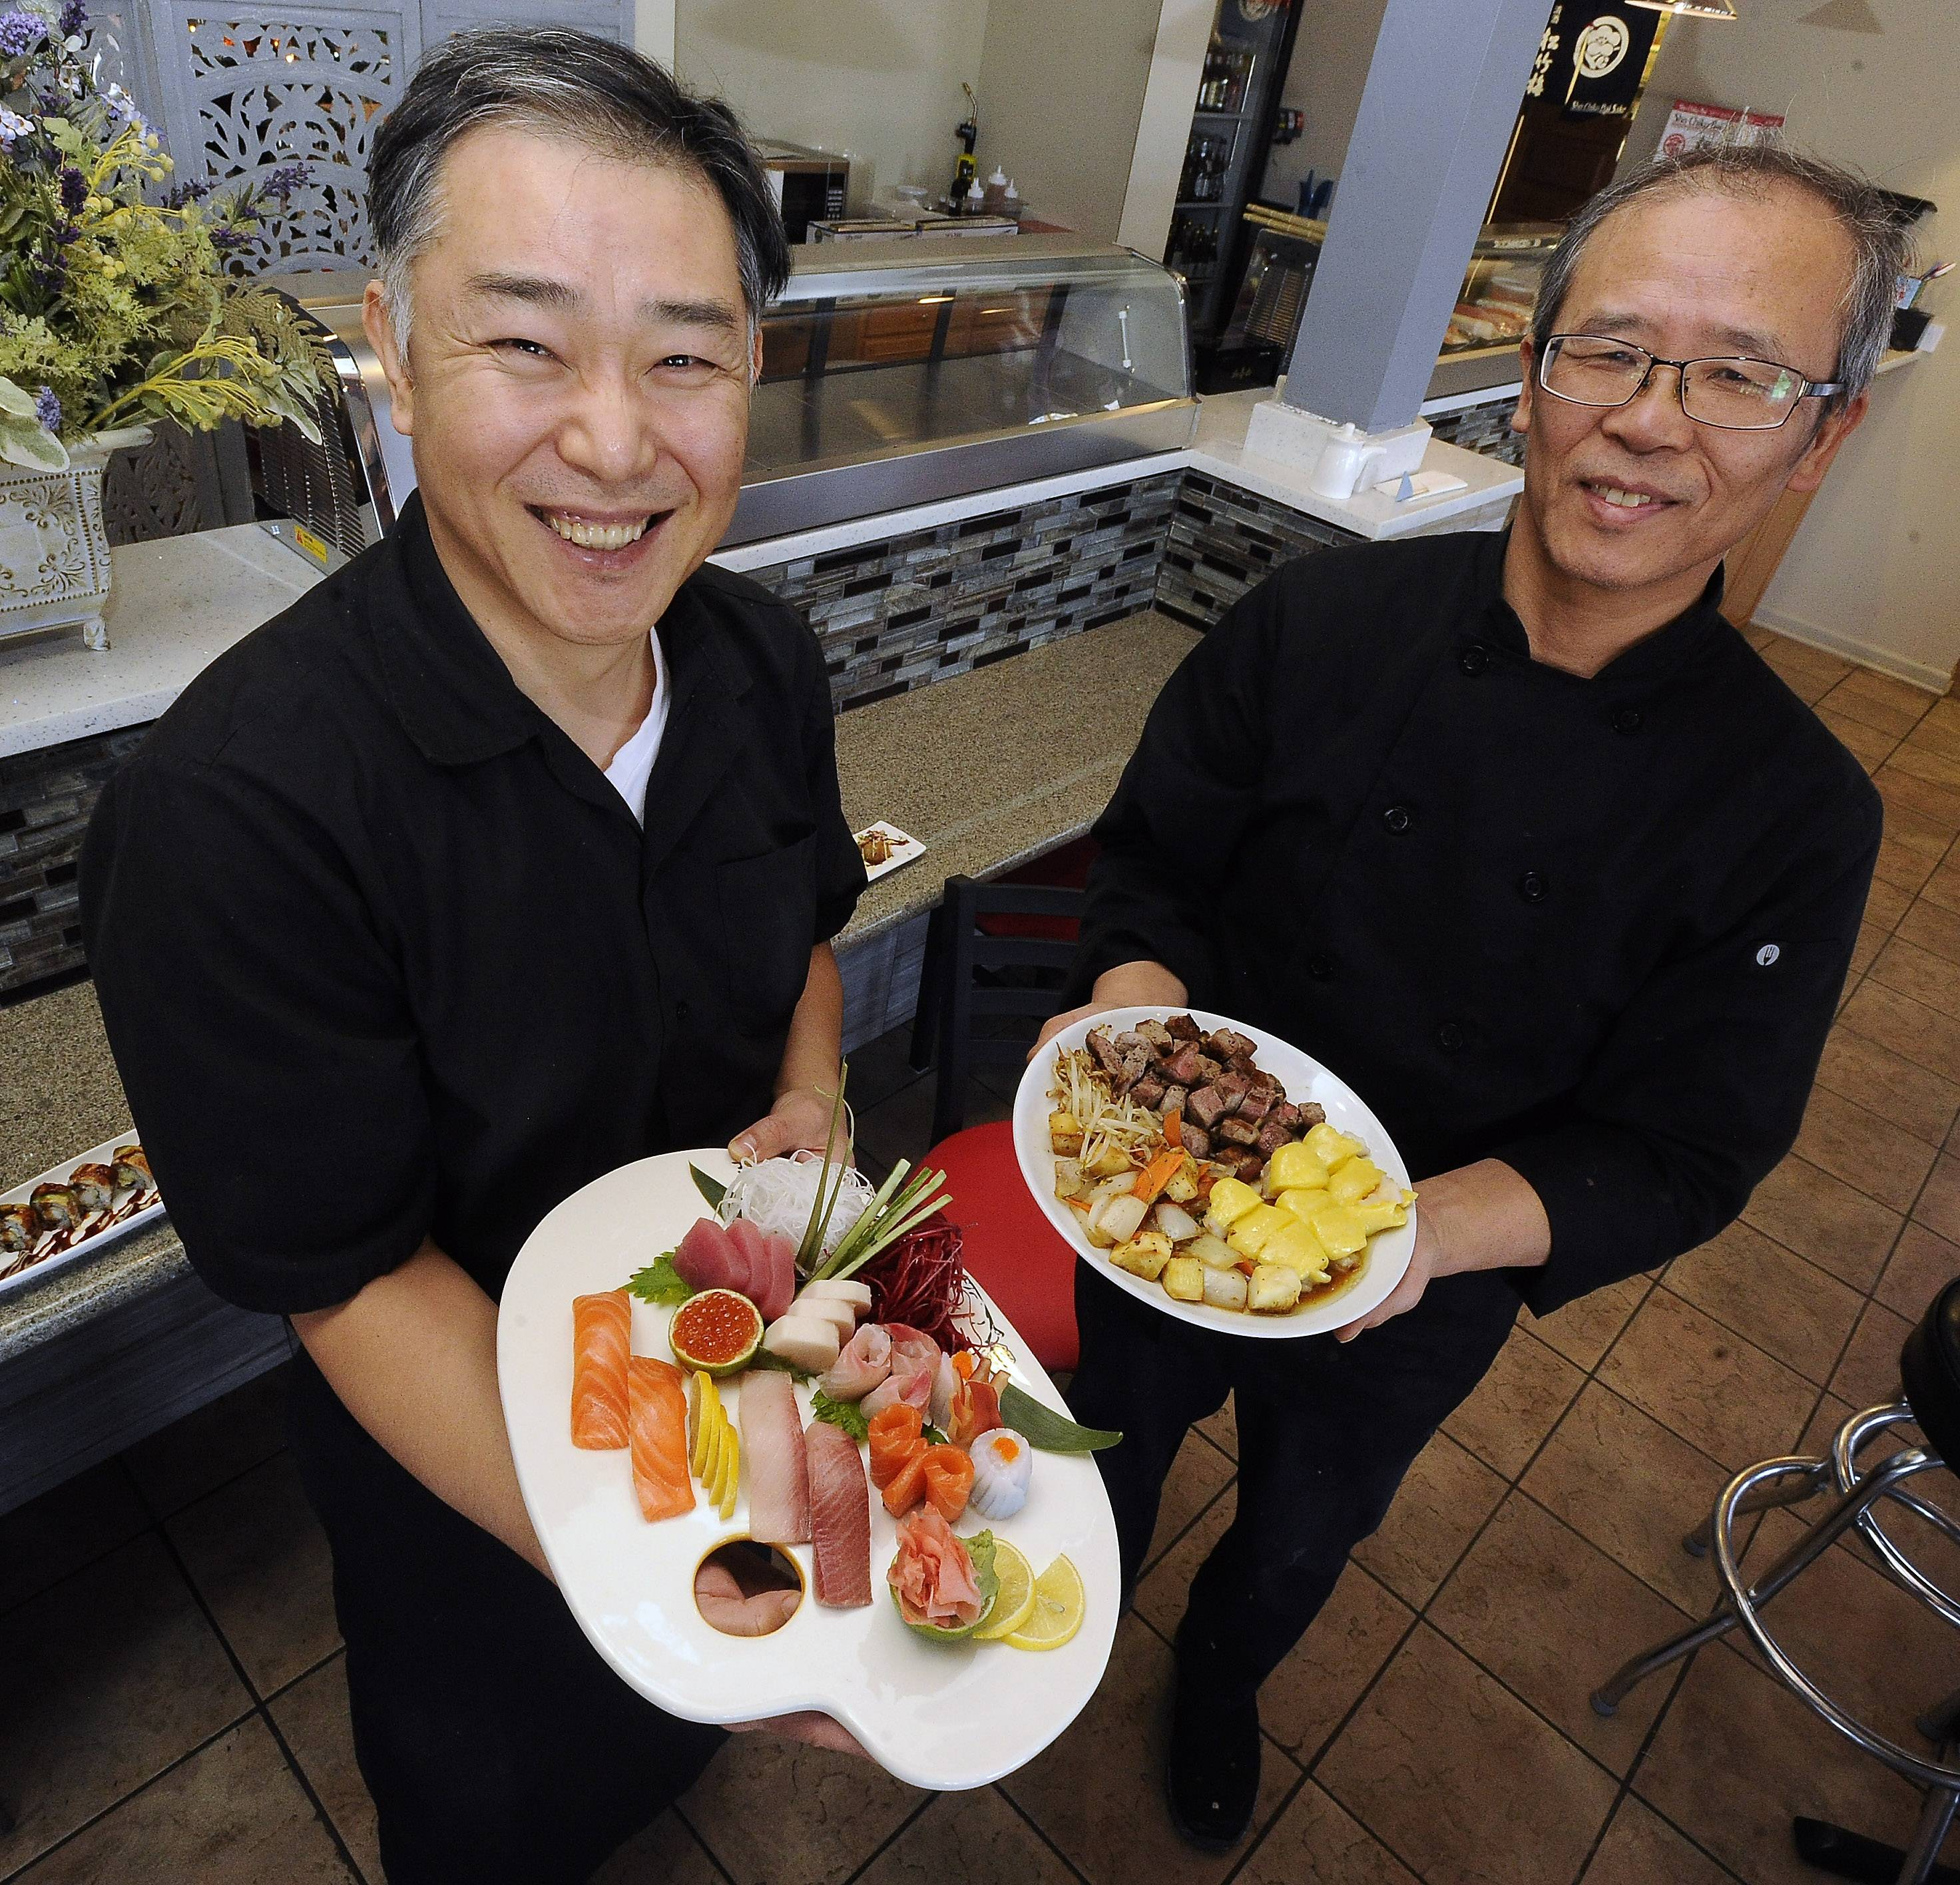 Sushi chef Sang Lee, left, presents the sushi sashimi platter and owner Tony Yi shows off the filet mignon and golden shrimp dish at Ai Hana in Lake Zurich.